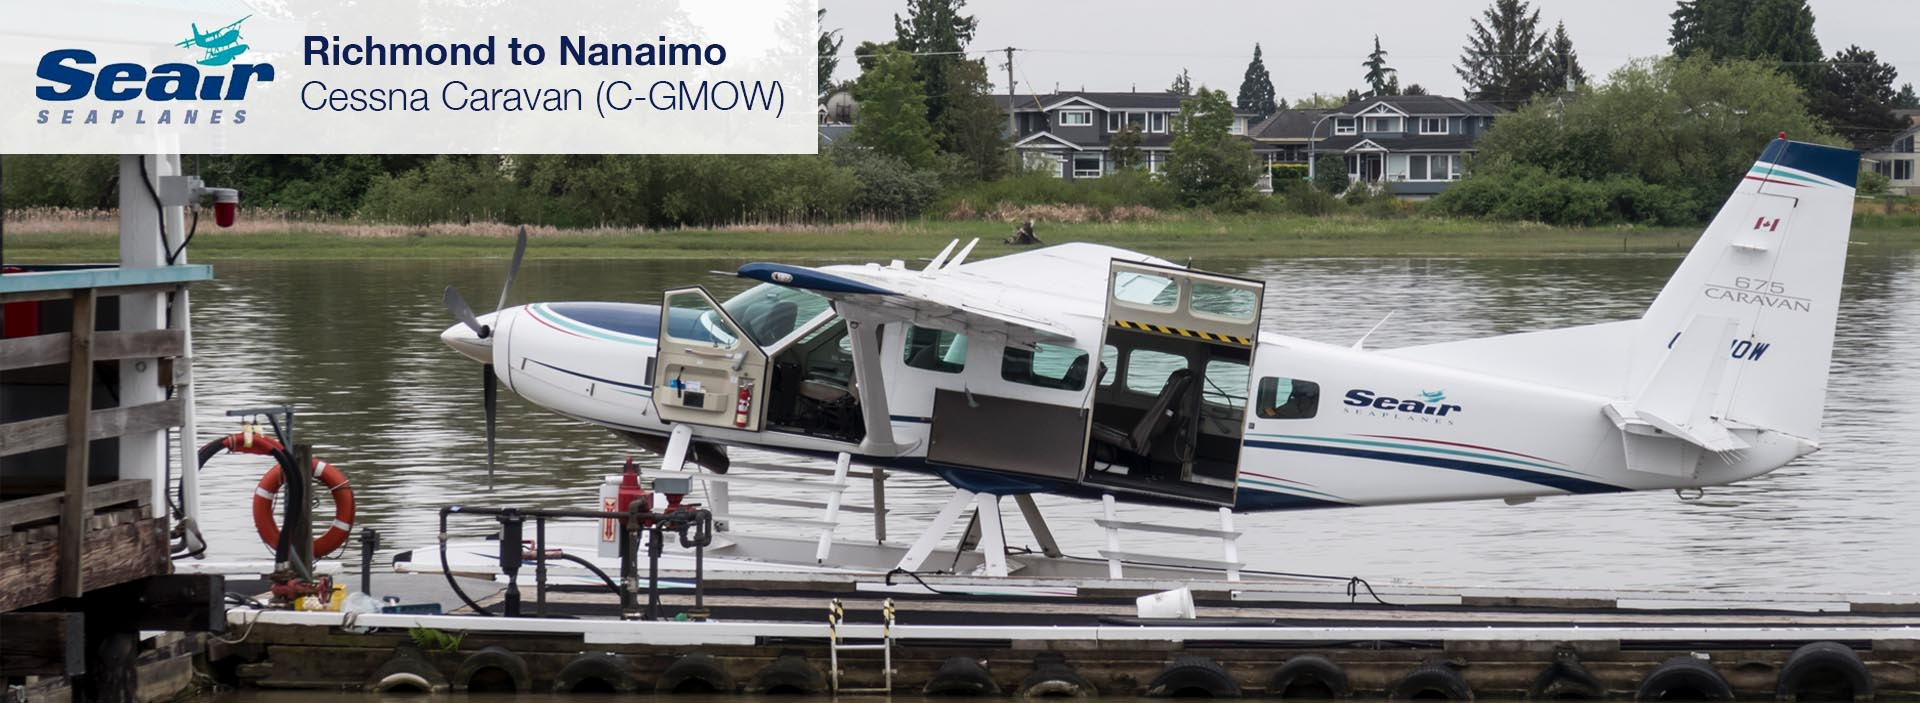 Flight Review: Seair Seaplanes Cessna Caravan from Richmond (Vancouver International) to Nanaimo